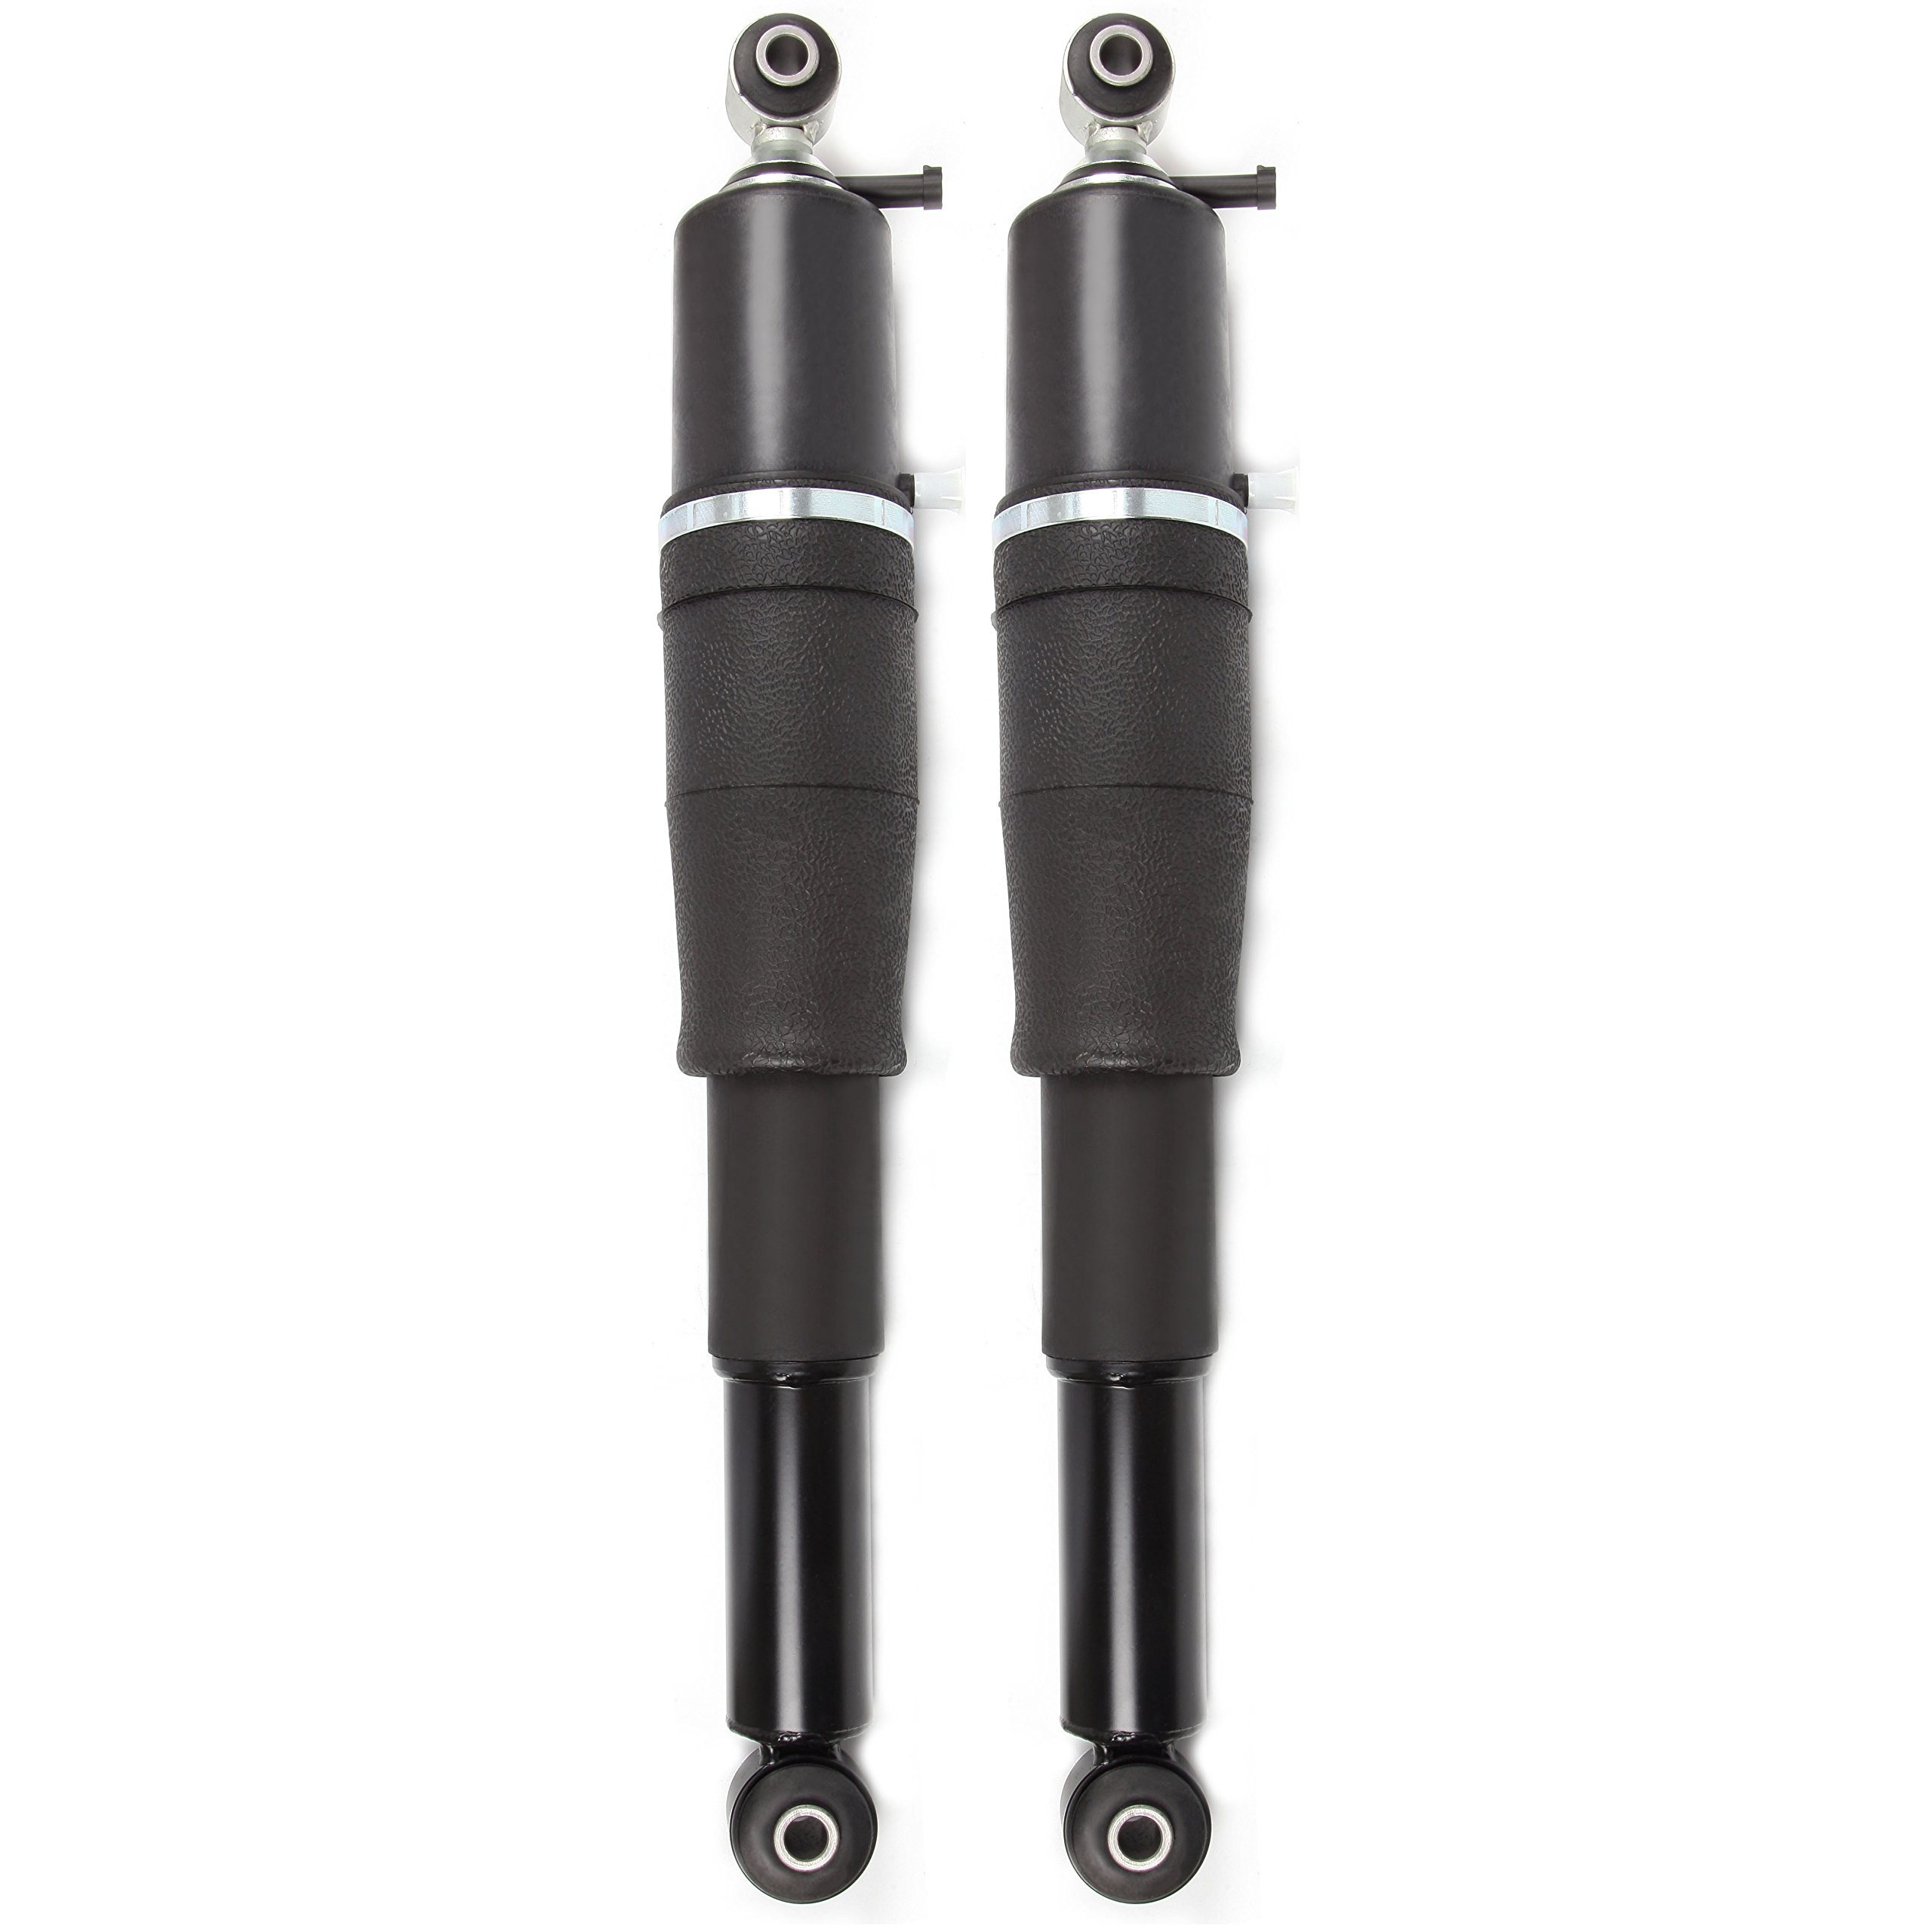 Air Suspensions Struts Spring Bags Replacement Strut Shock Absorber Airmatic Kits ECCPP fit for 2002-2014 Cadillac Escalade, 2003-2014 Cadillac Escalade ESV, Rear Qty(2)